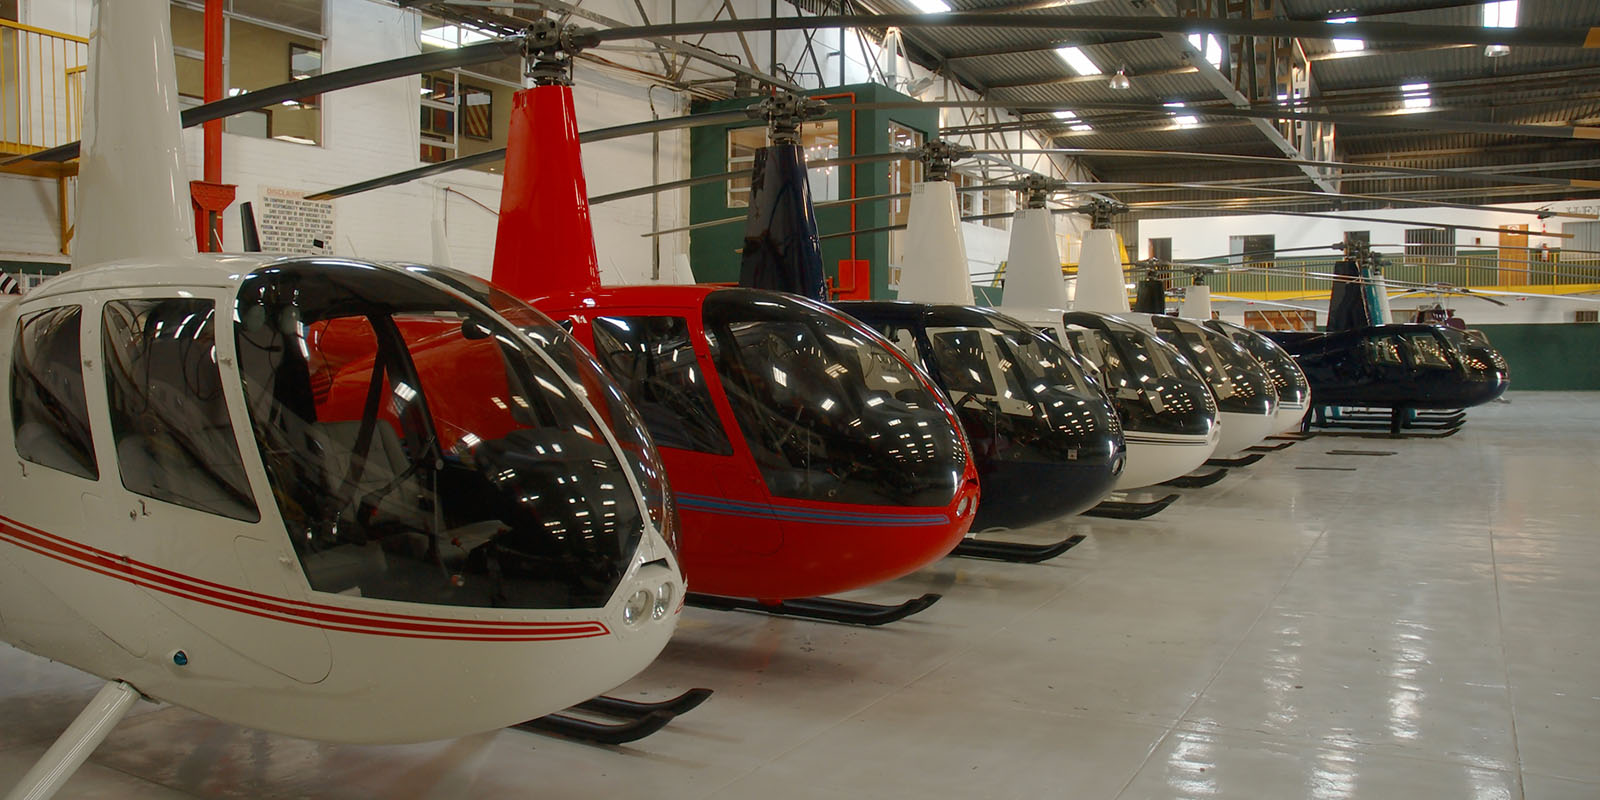 Insuring Your Aviation Business